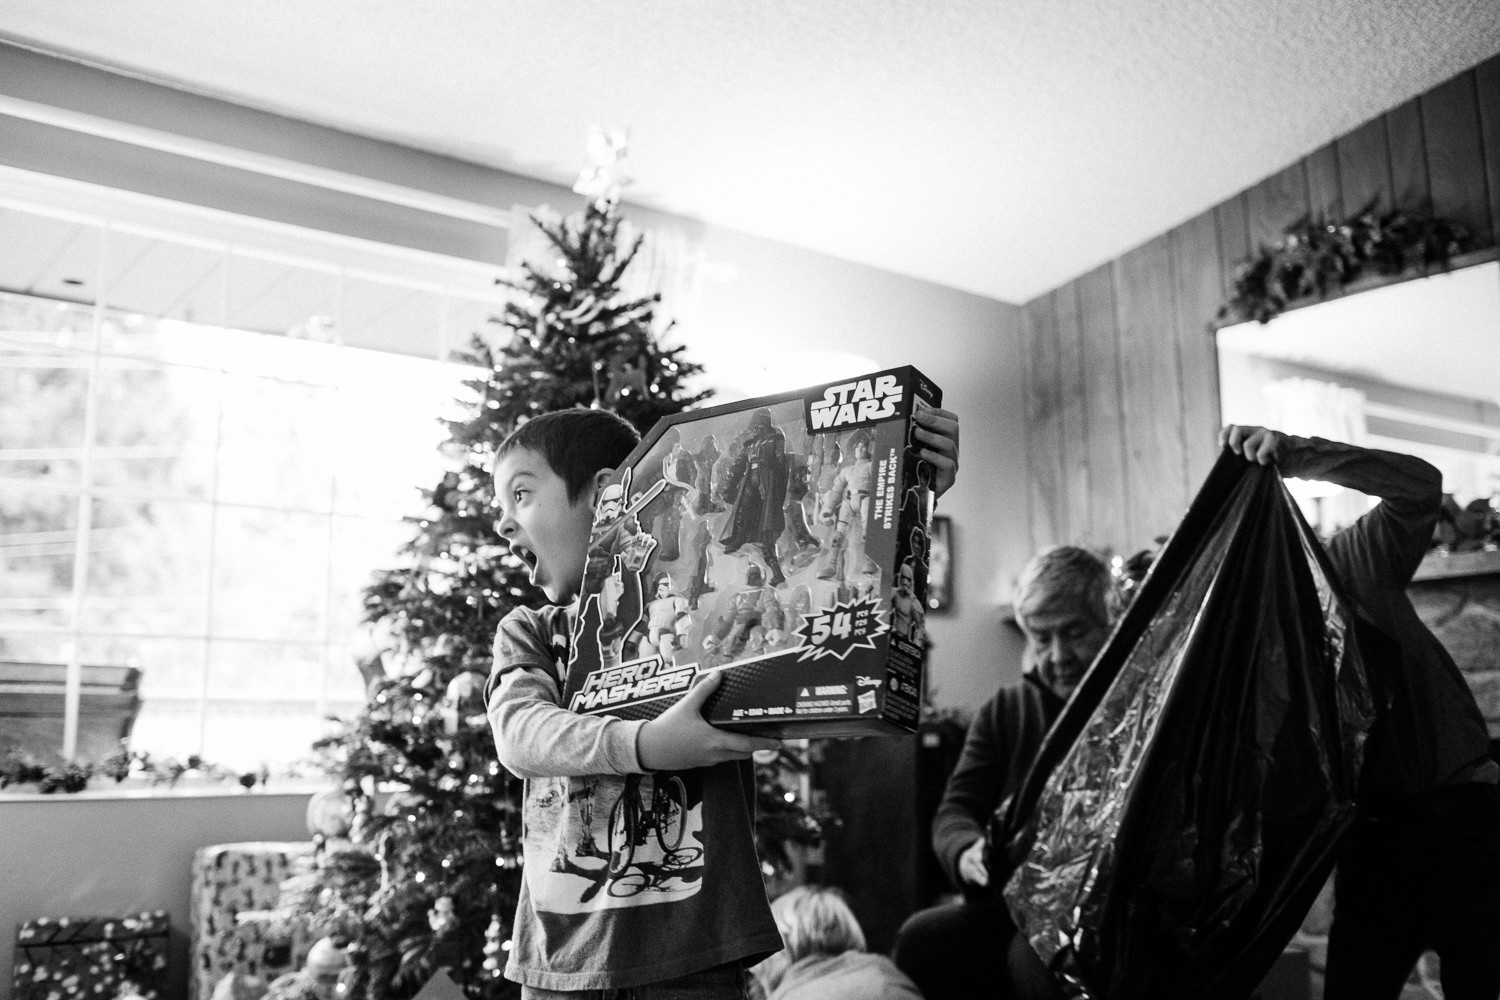 Rodriguez Christmas in Marysville, WA. December 2015.